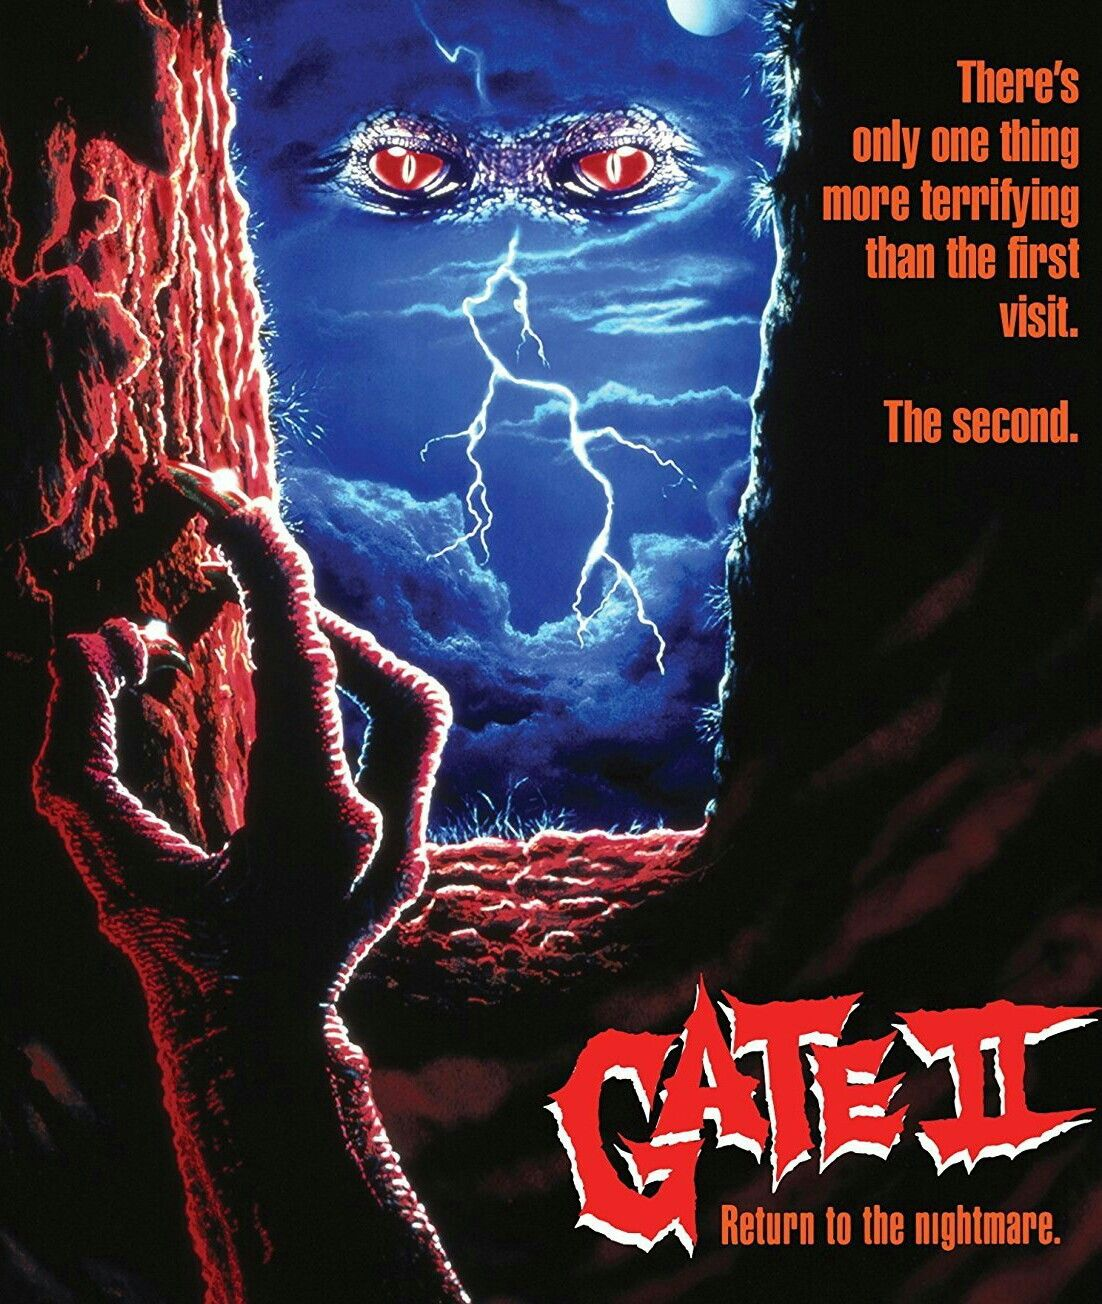 THE GATE II (With images) American horror movie, Horror